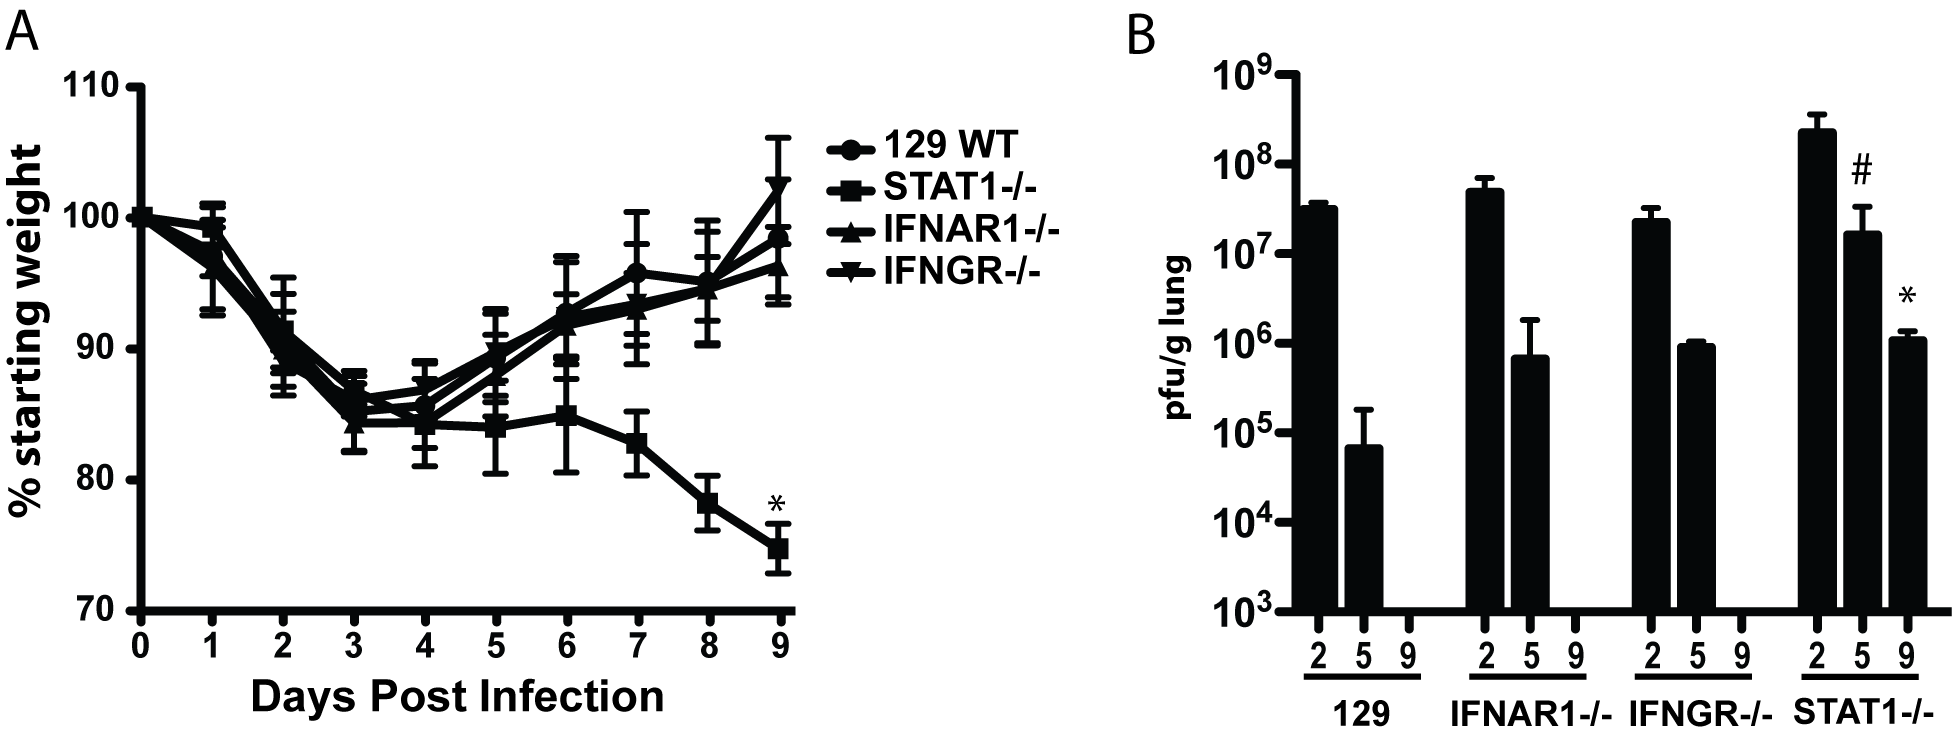 Mouse adapted SARS-CoV (rMA15) infection of 129 WT, IFNAR1−/−, IFNGR−/− and STAT1−/− mice.